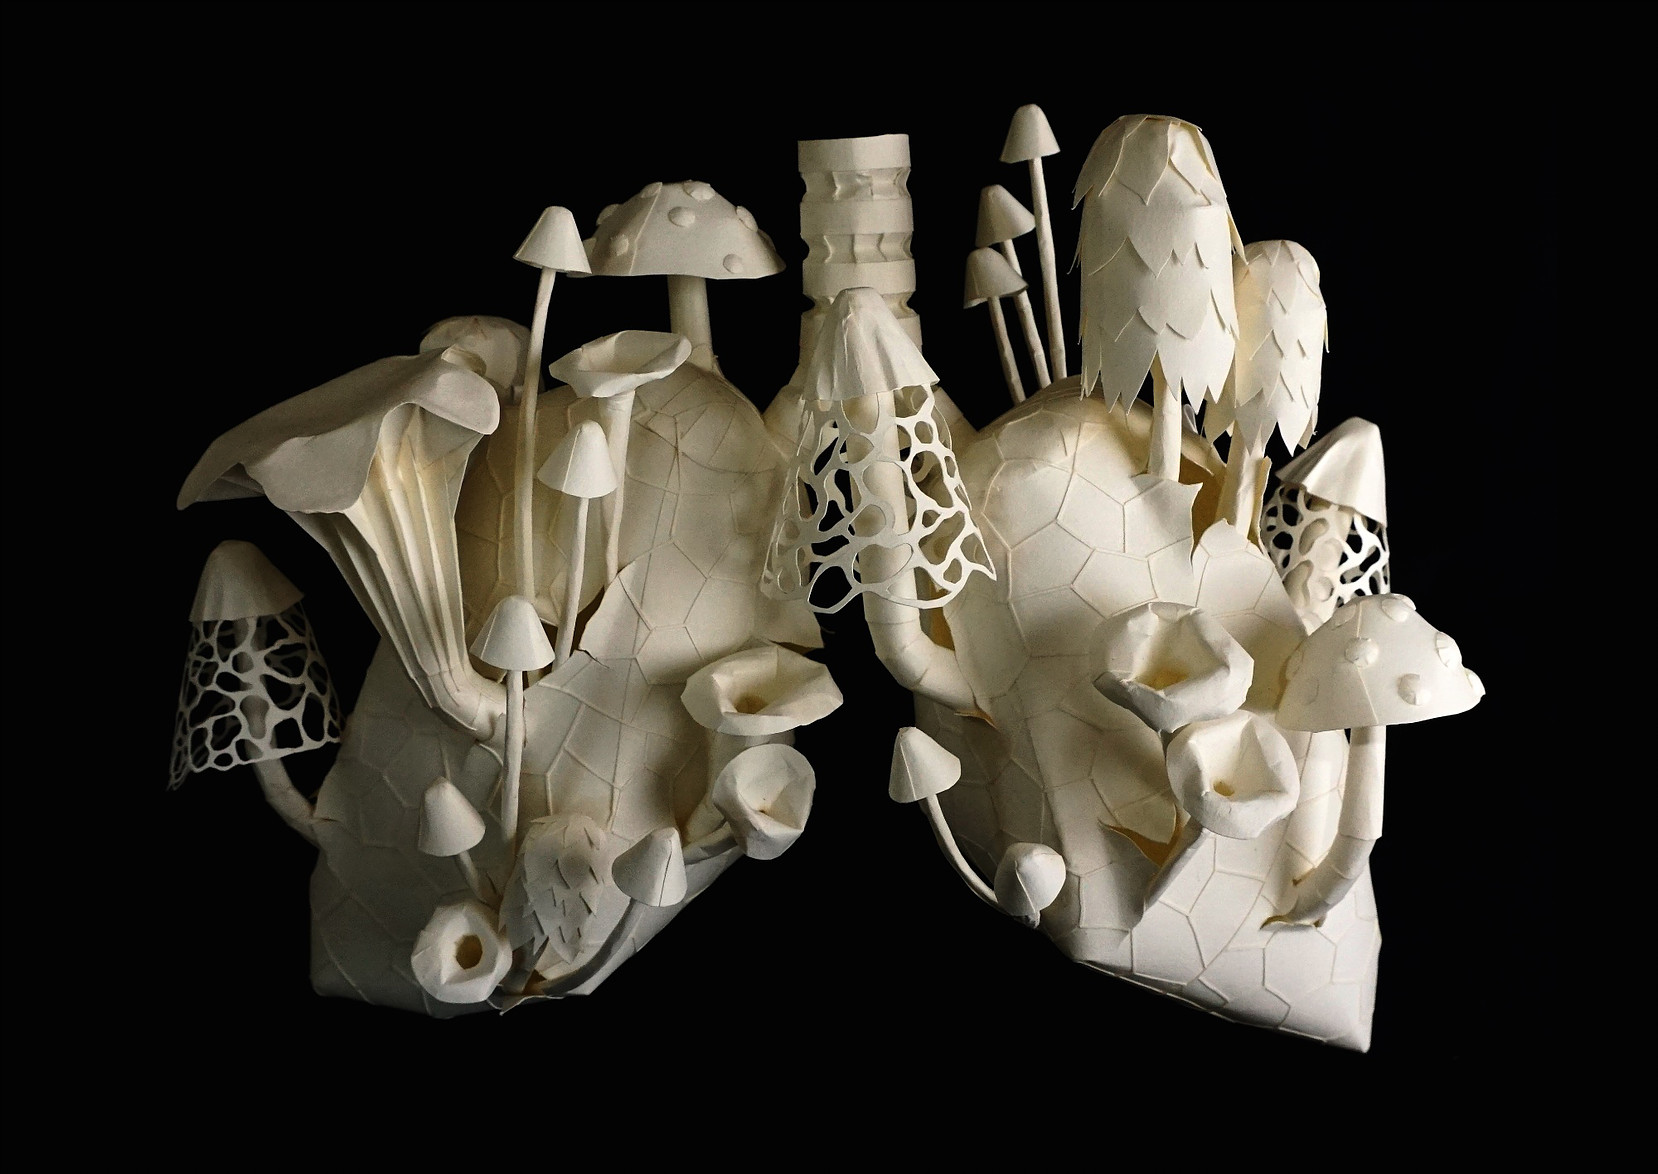 Eerily Beautiful and Macabre Paper Sculptures by Sinan Soykut - Fungi Lungs